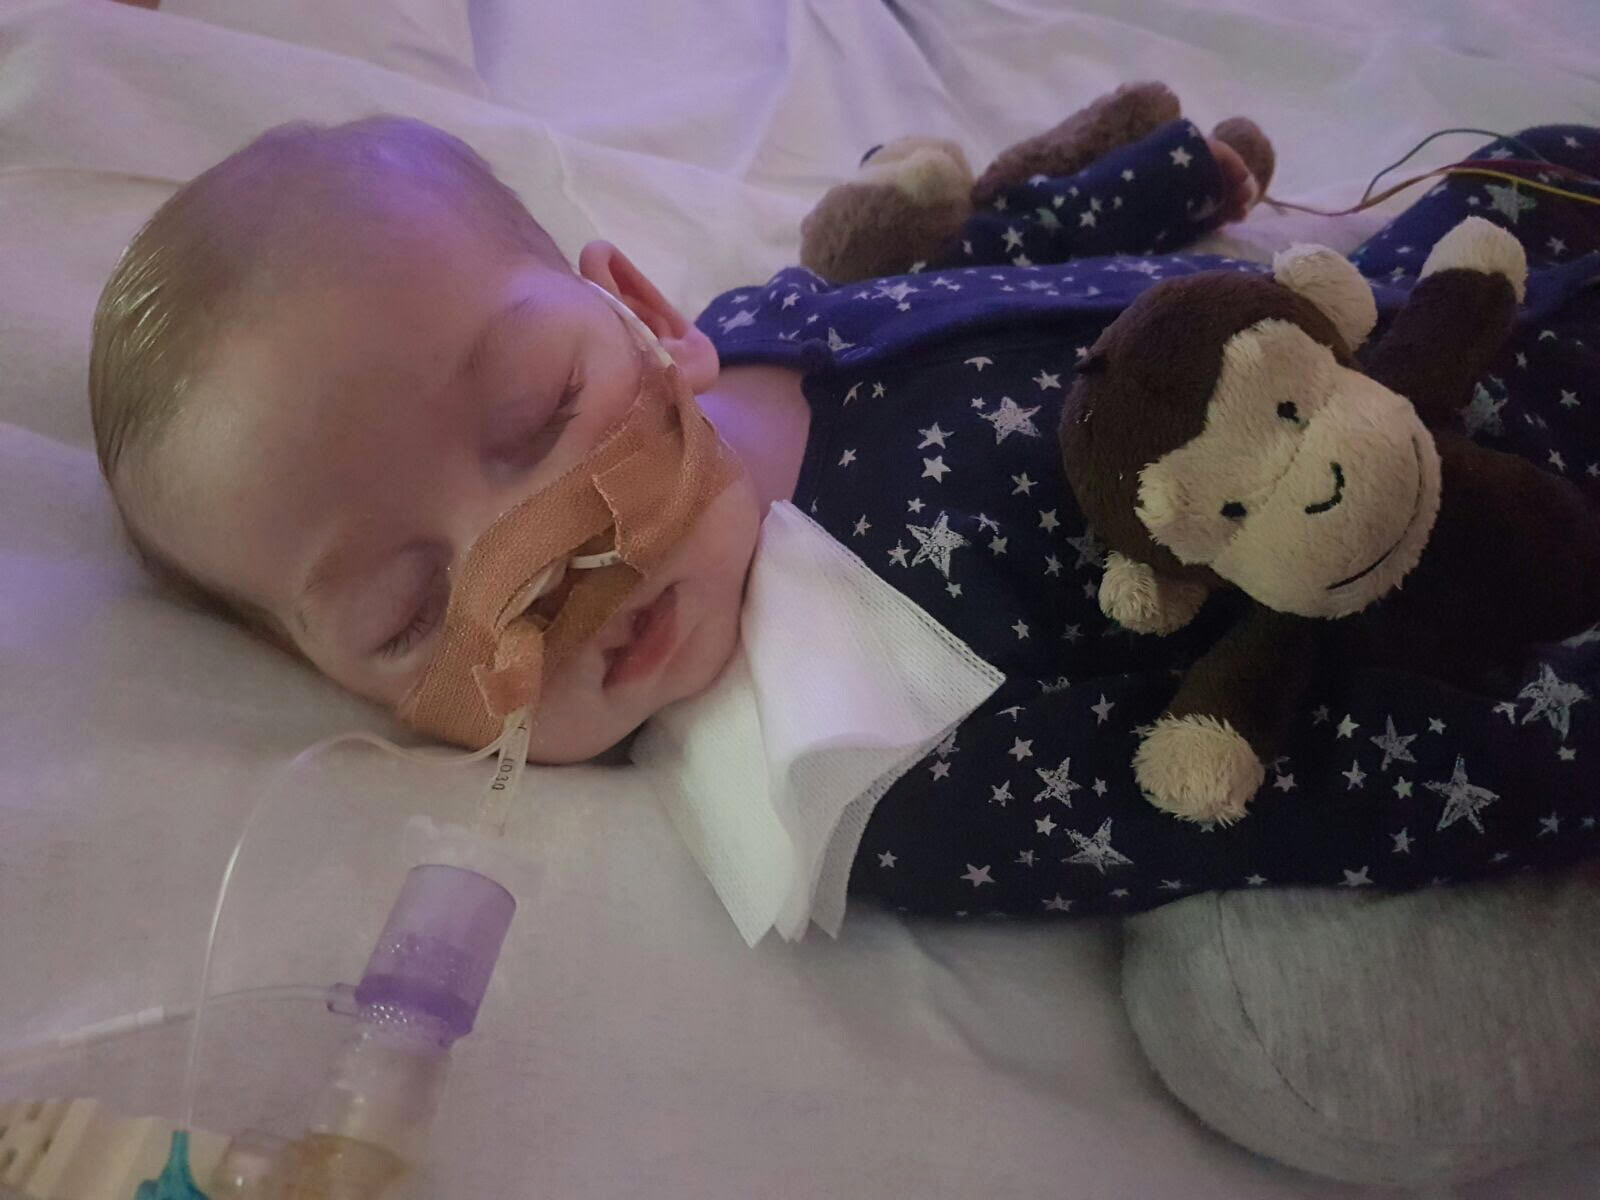 Church comment on final ruling on treatment of baby Charlie Gard